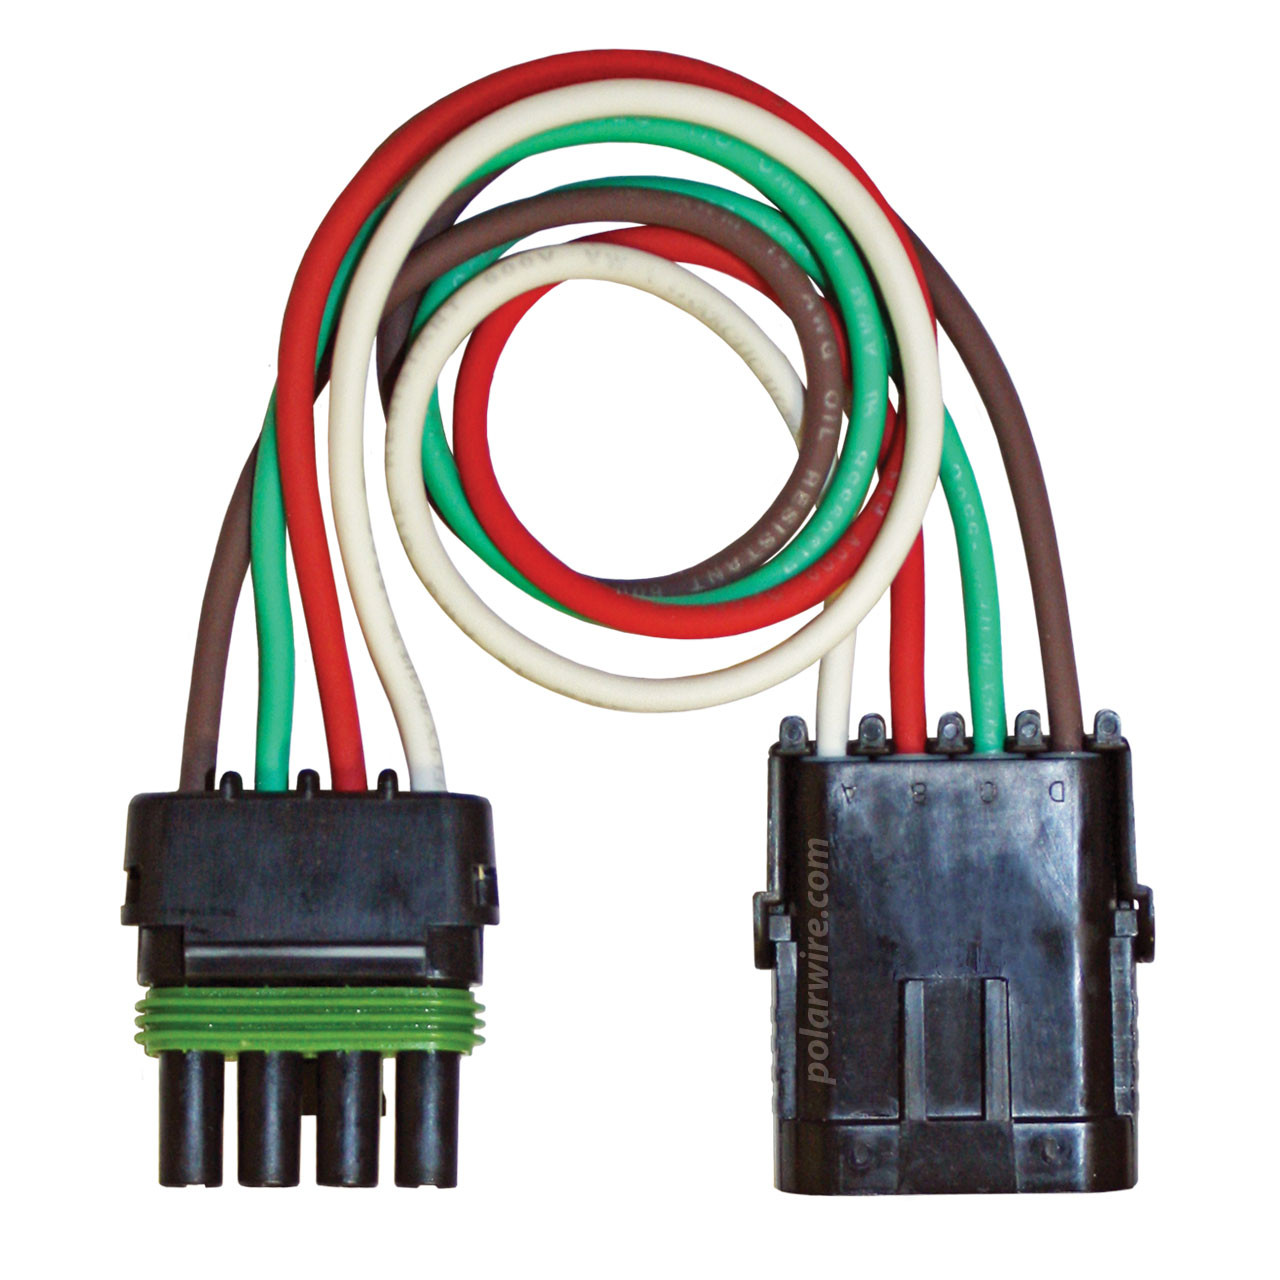 12 inch 4 pole Weather Pack Pigtail wired with 14 AWG Arctic Ultraflex Blue wire in red, white, green and brown